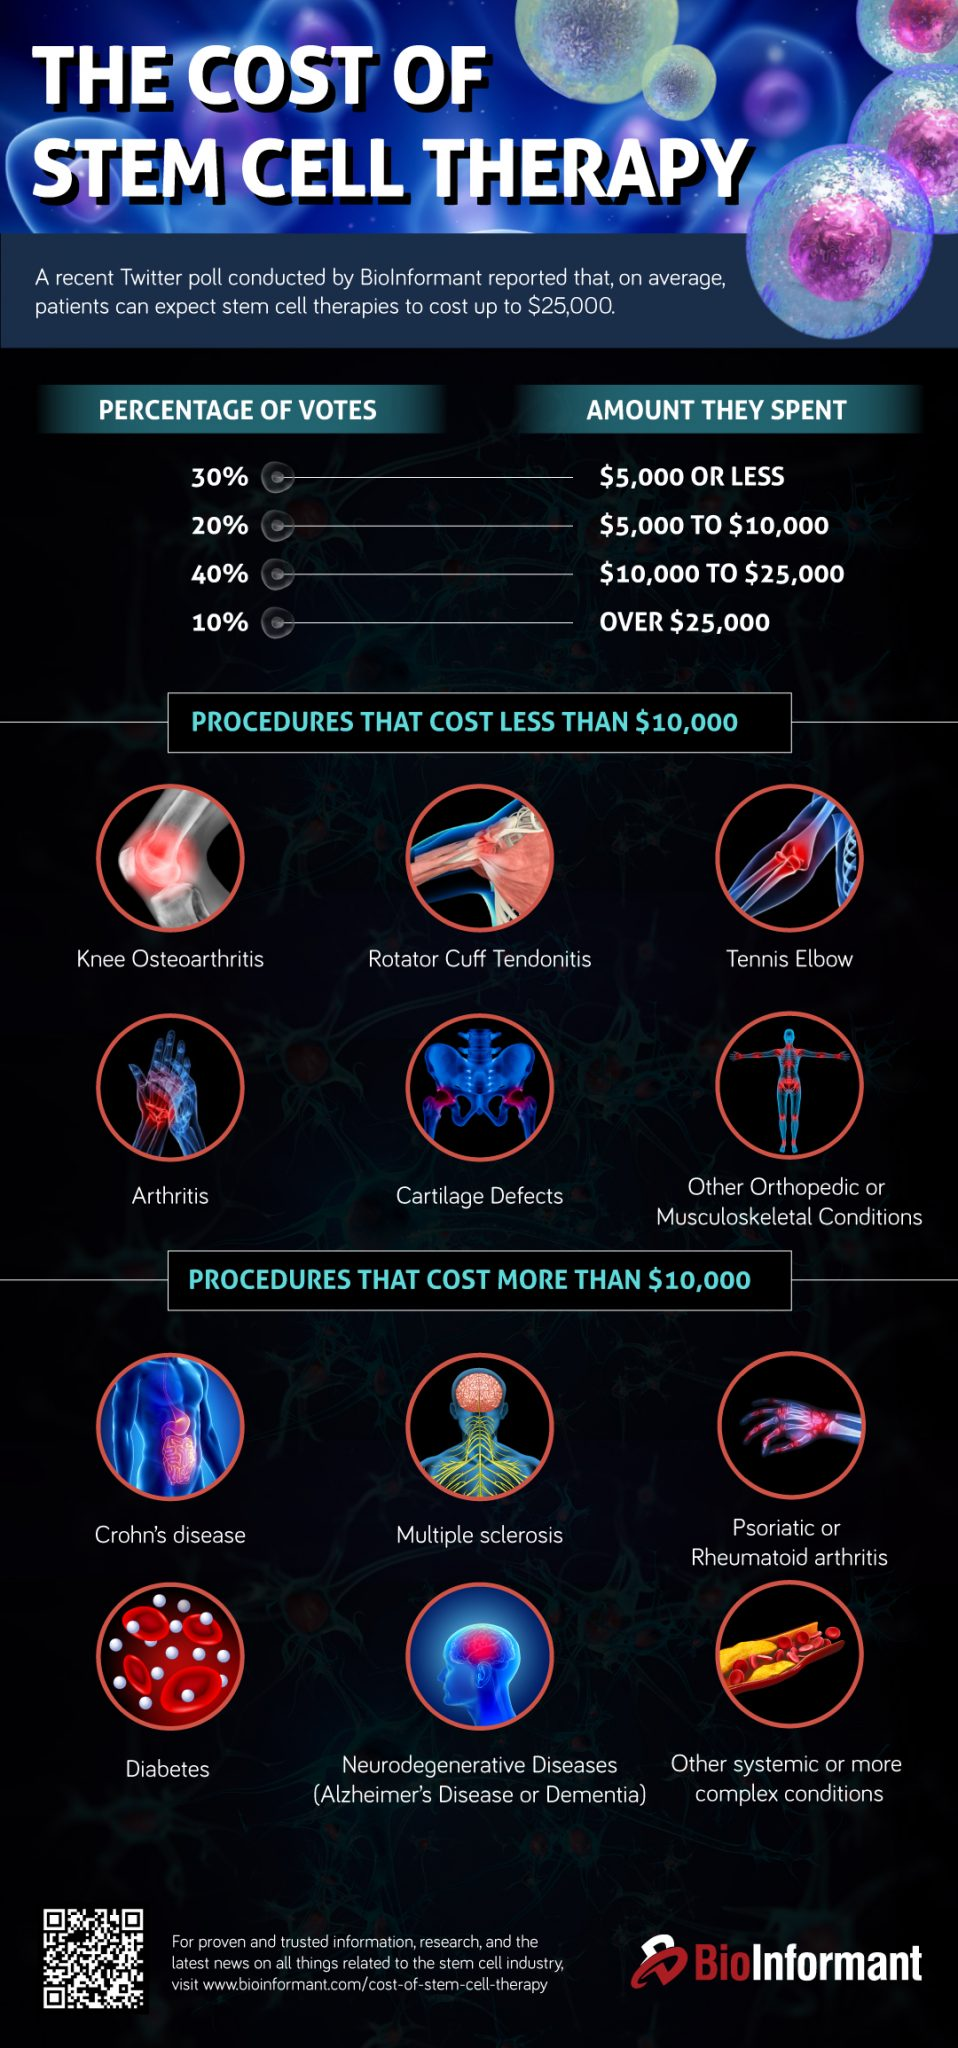 The Cost Of Stem Cell Therapy And Why It's So Expensive | BioInformant